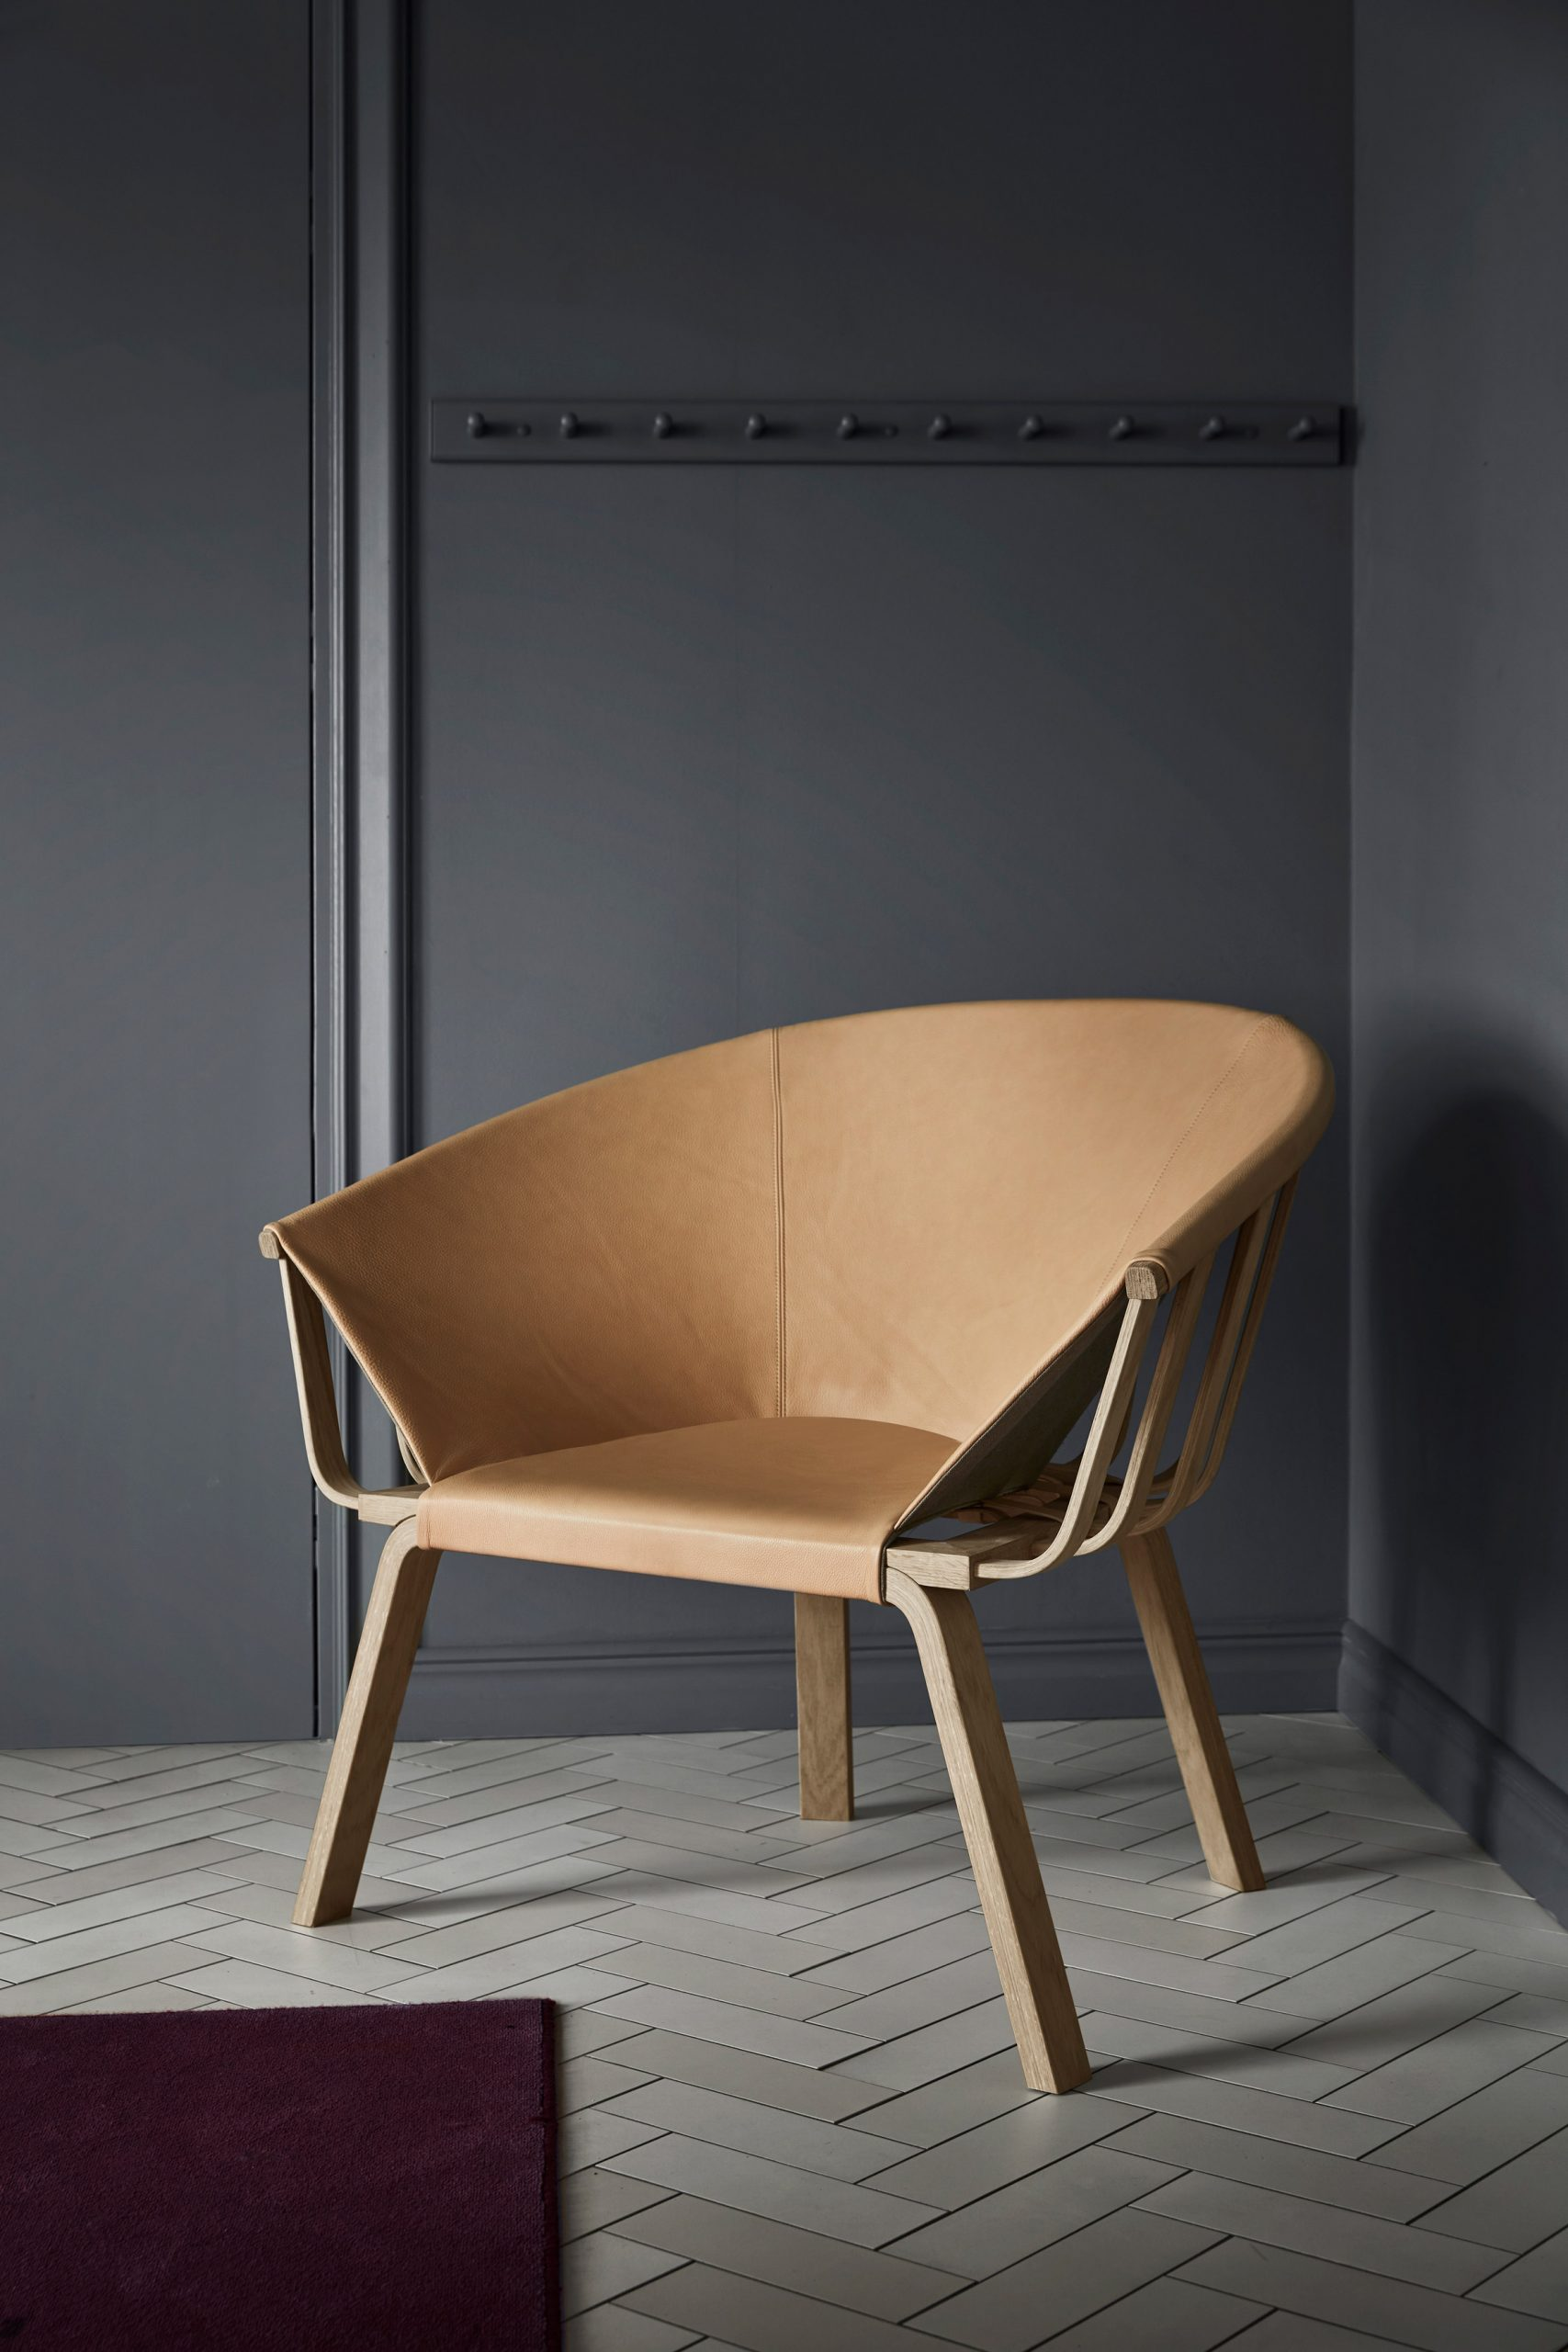 Wood-and-leather easy chair